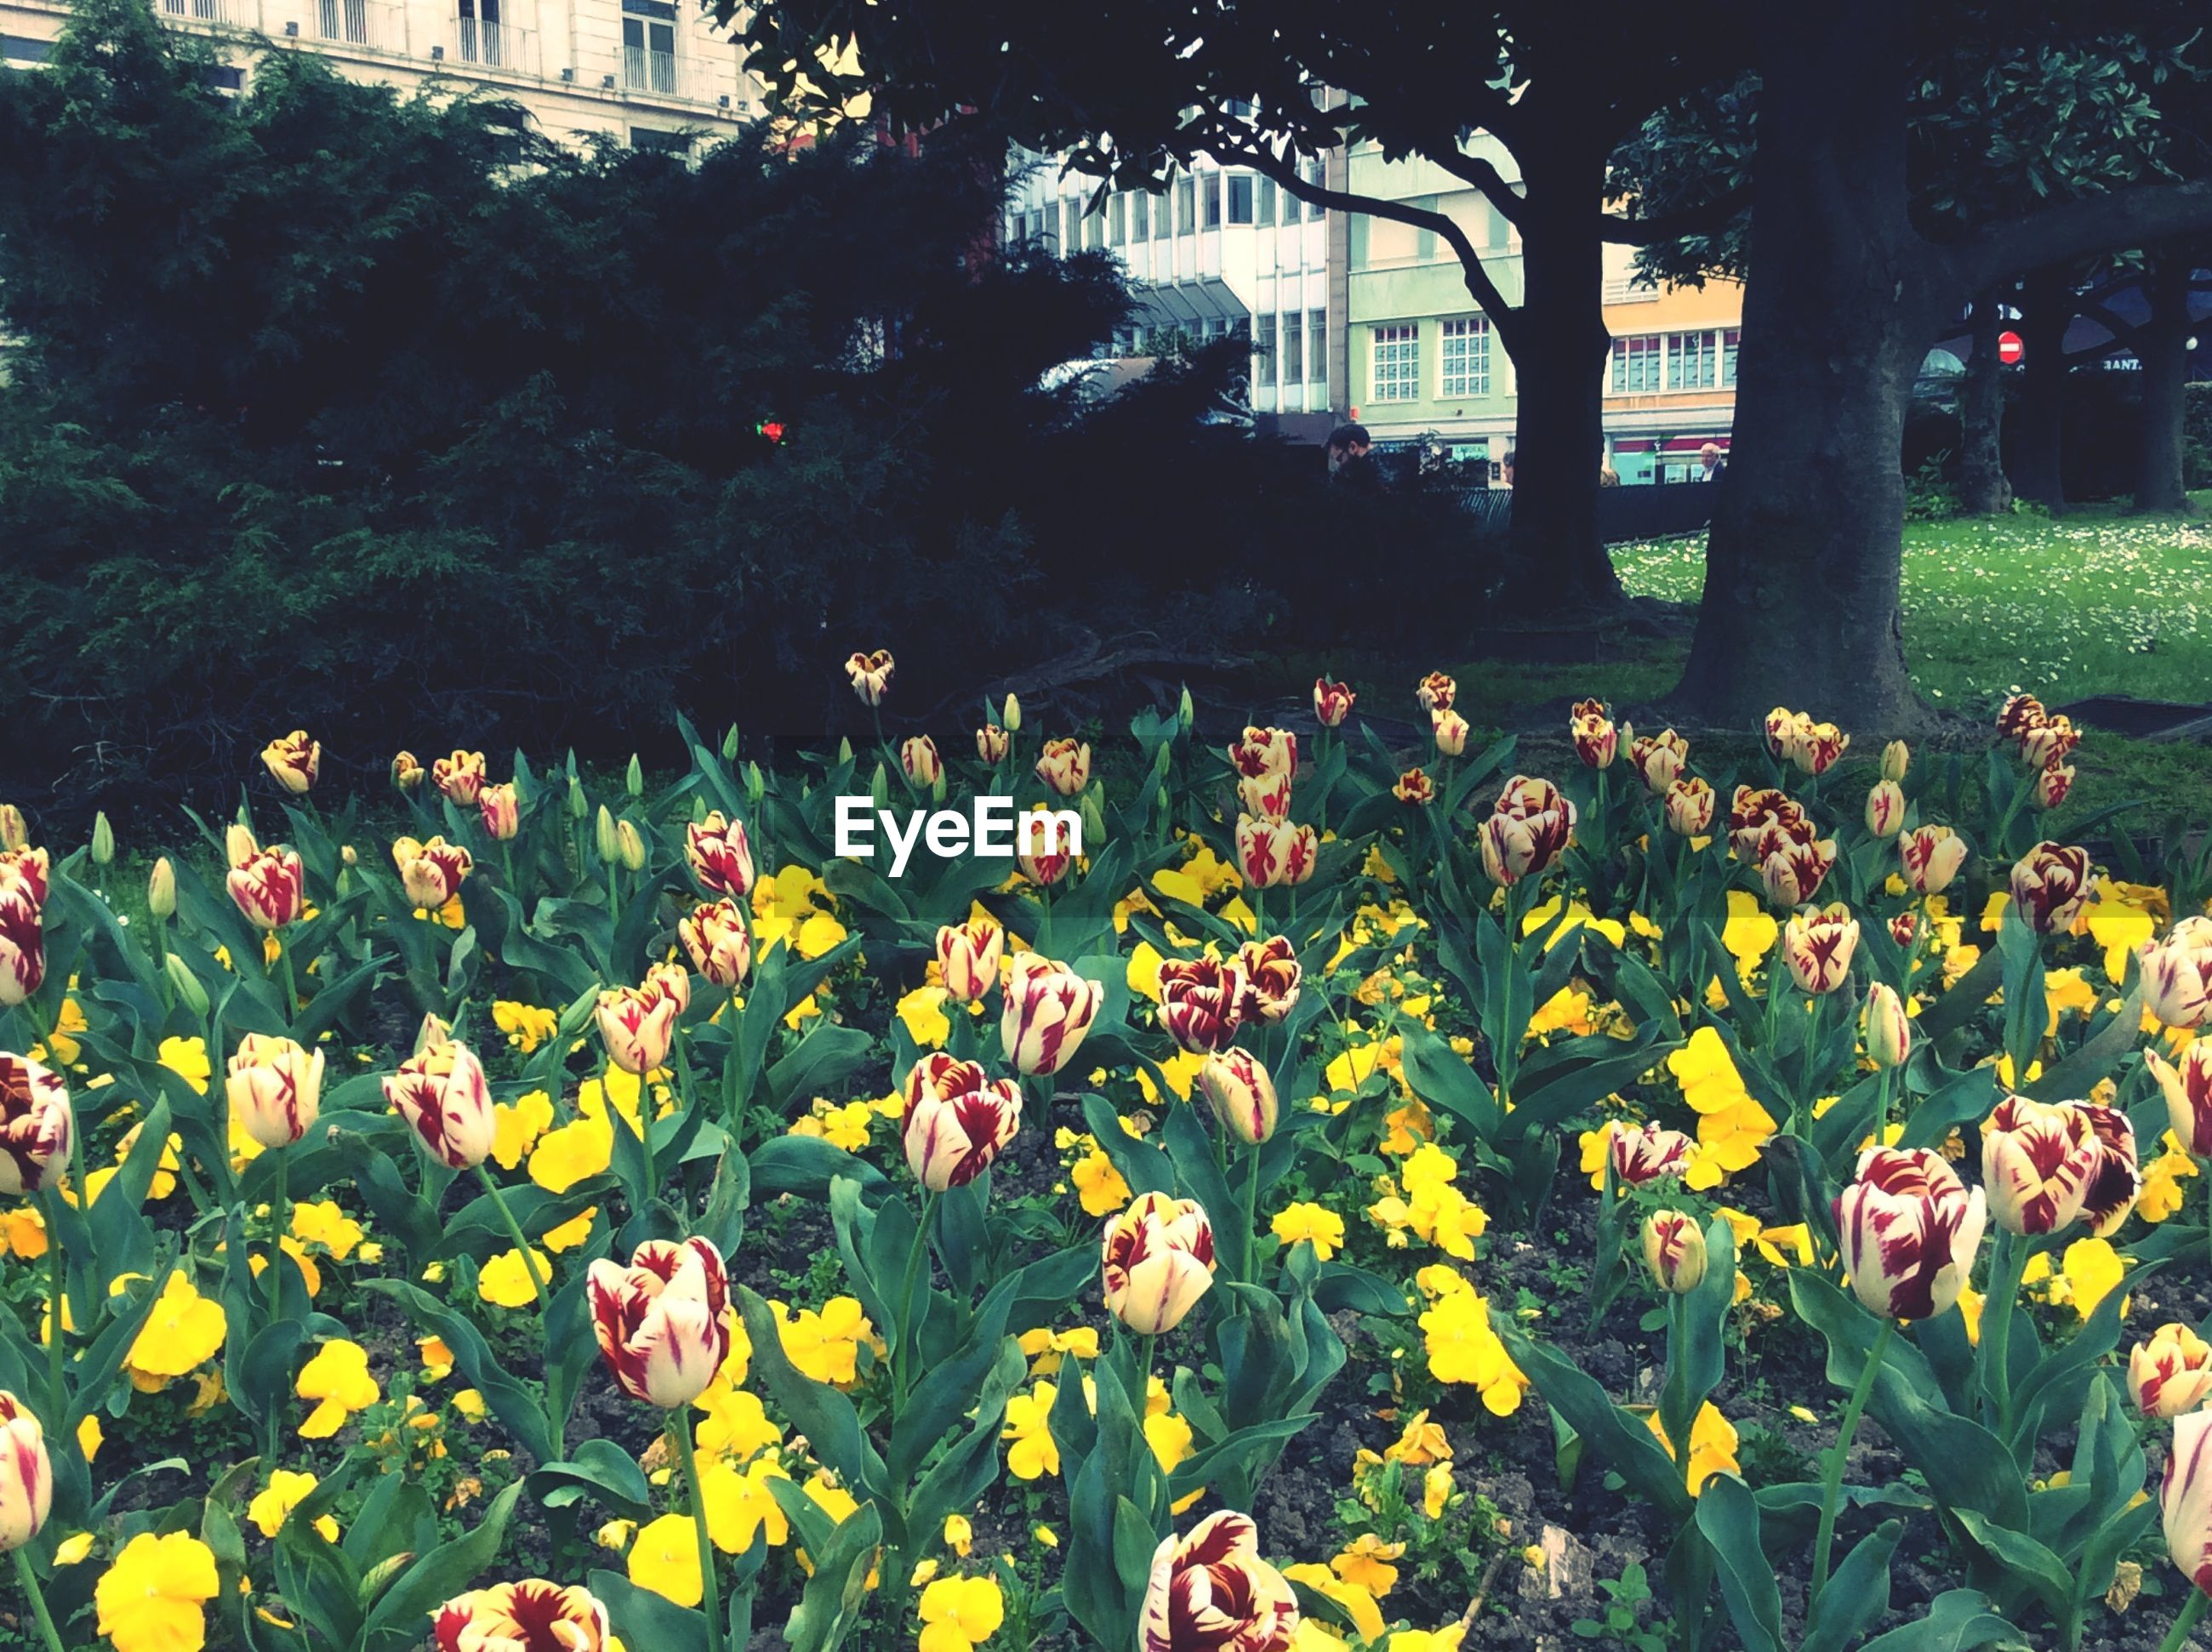 flower, growth, plant, leaf, nature, tree, park - man made space, grass, green color, beauty in nature, freshness, lawn, field, fragility, day, outdoors, blooming, front or back yard